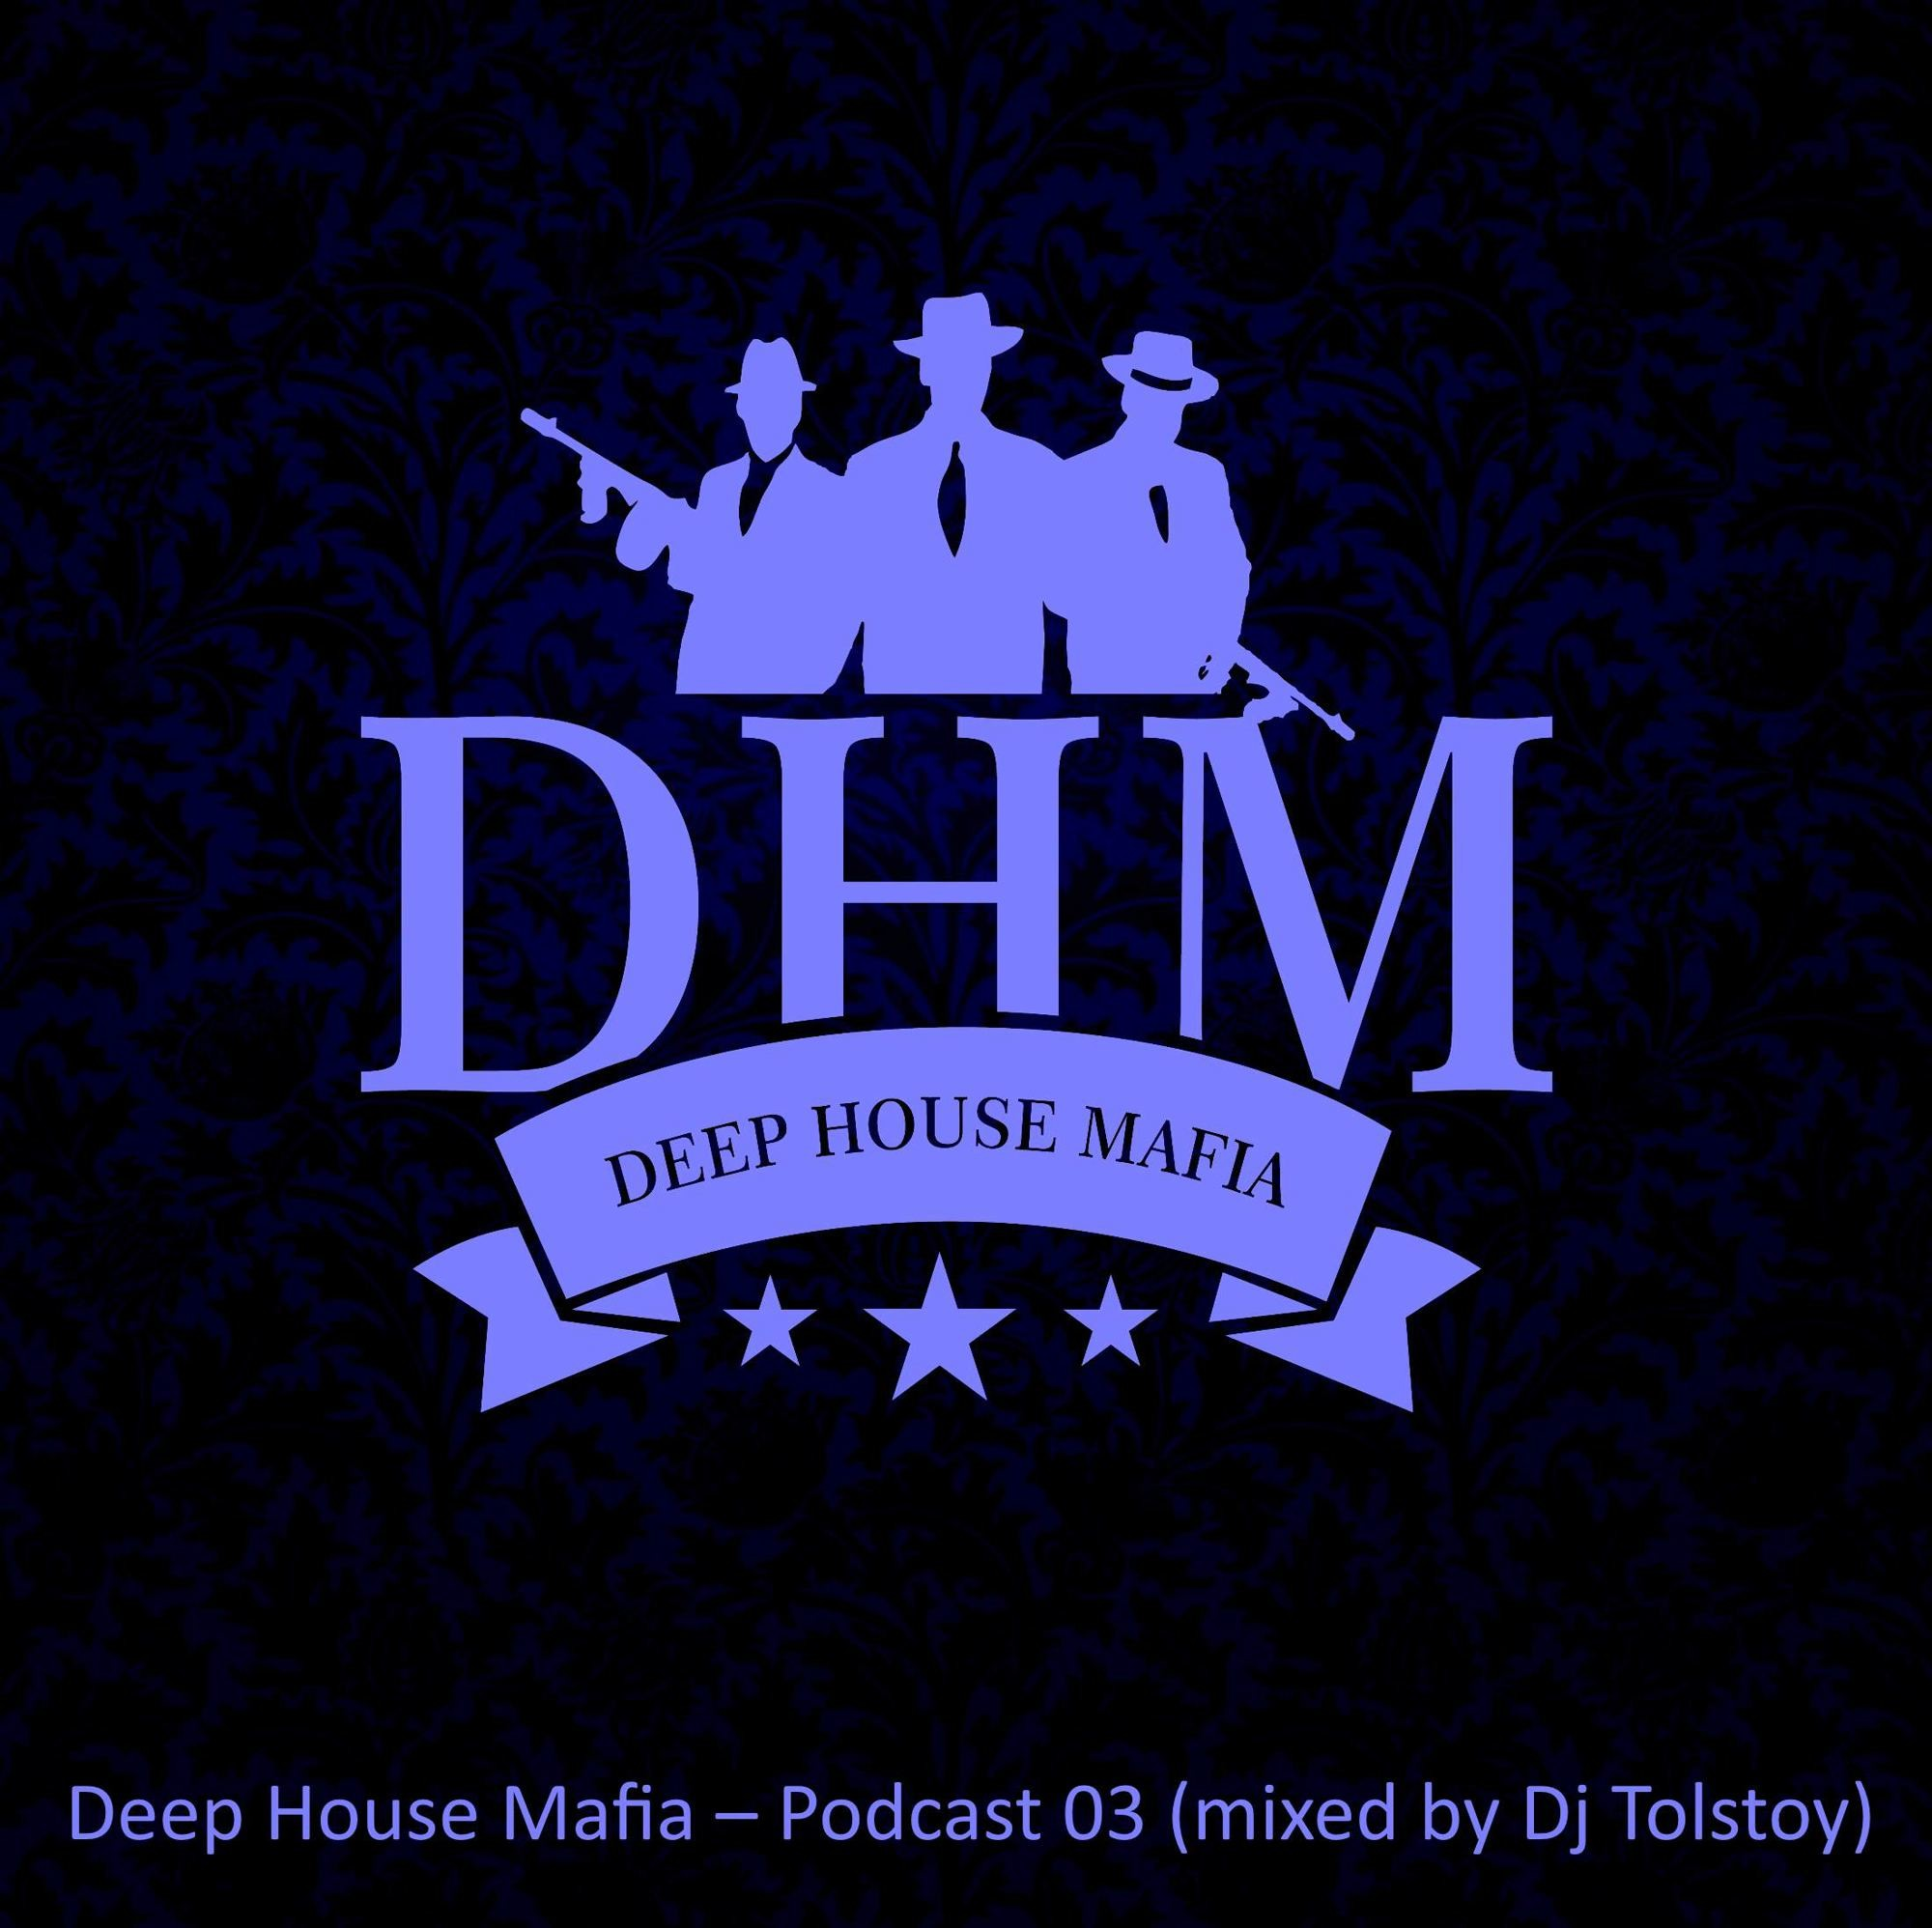 deep house mafia podcast 03 mixed by dj tolstoy